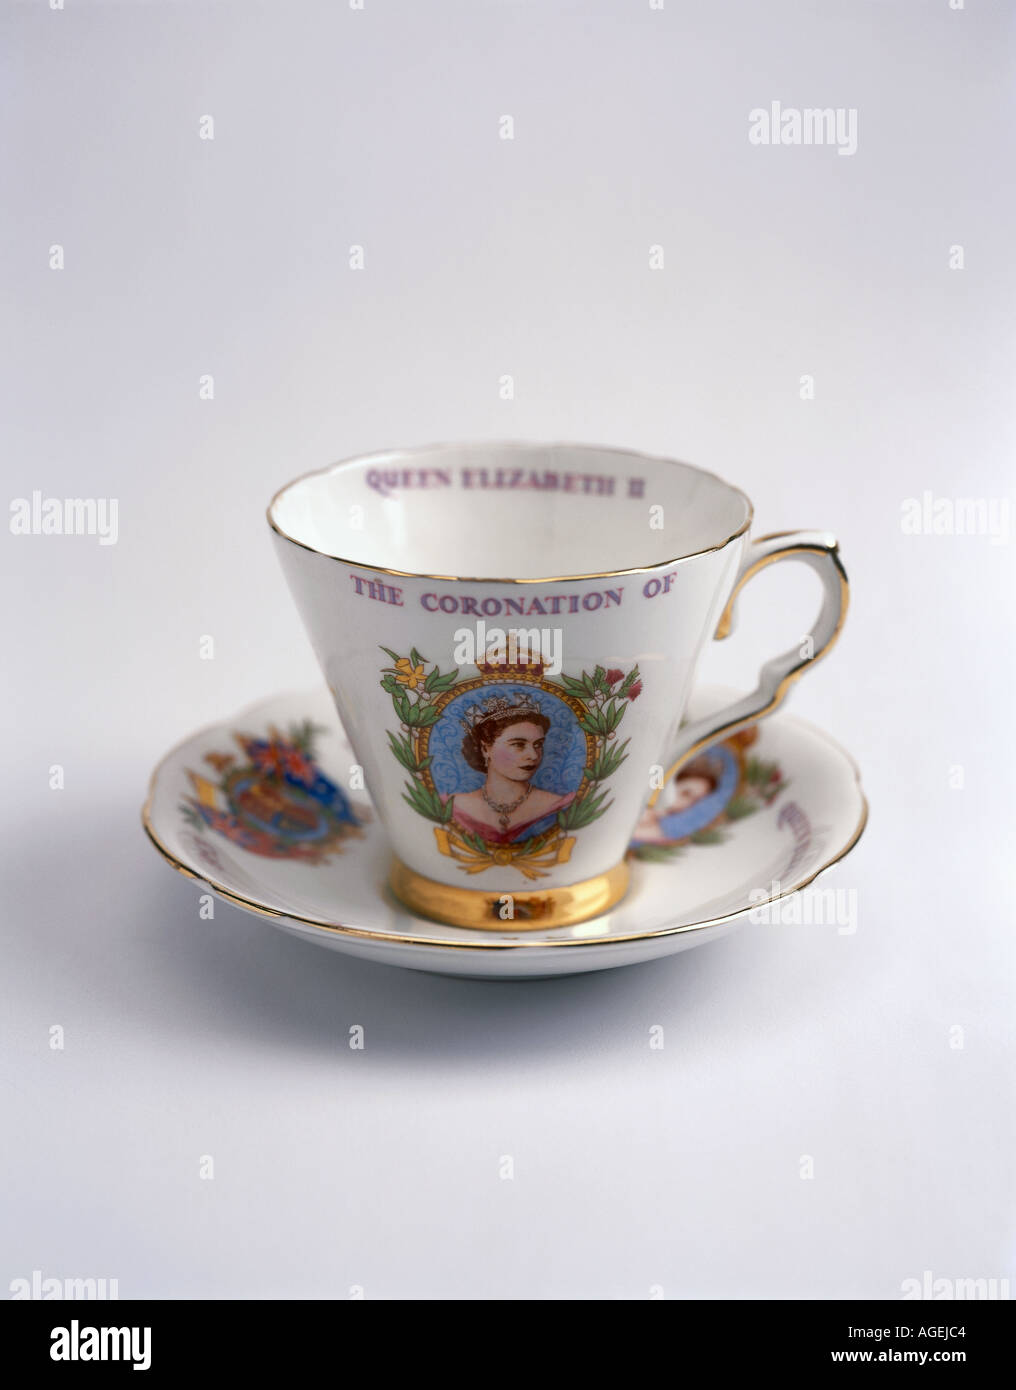 Coronation cup and saucer on white - Stock Image